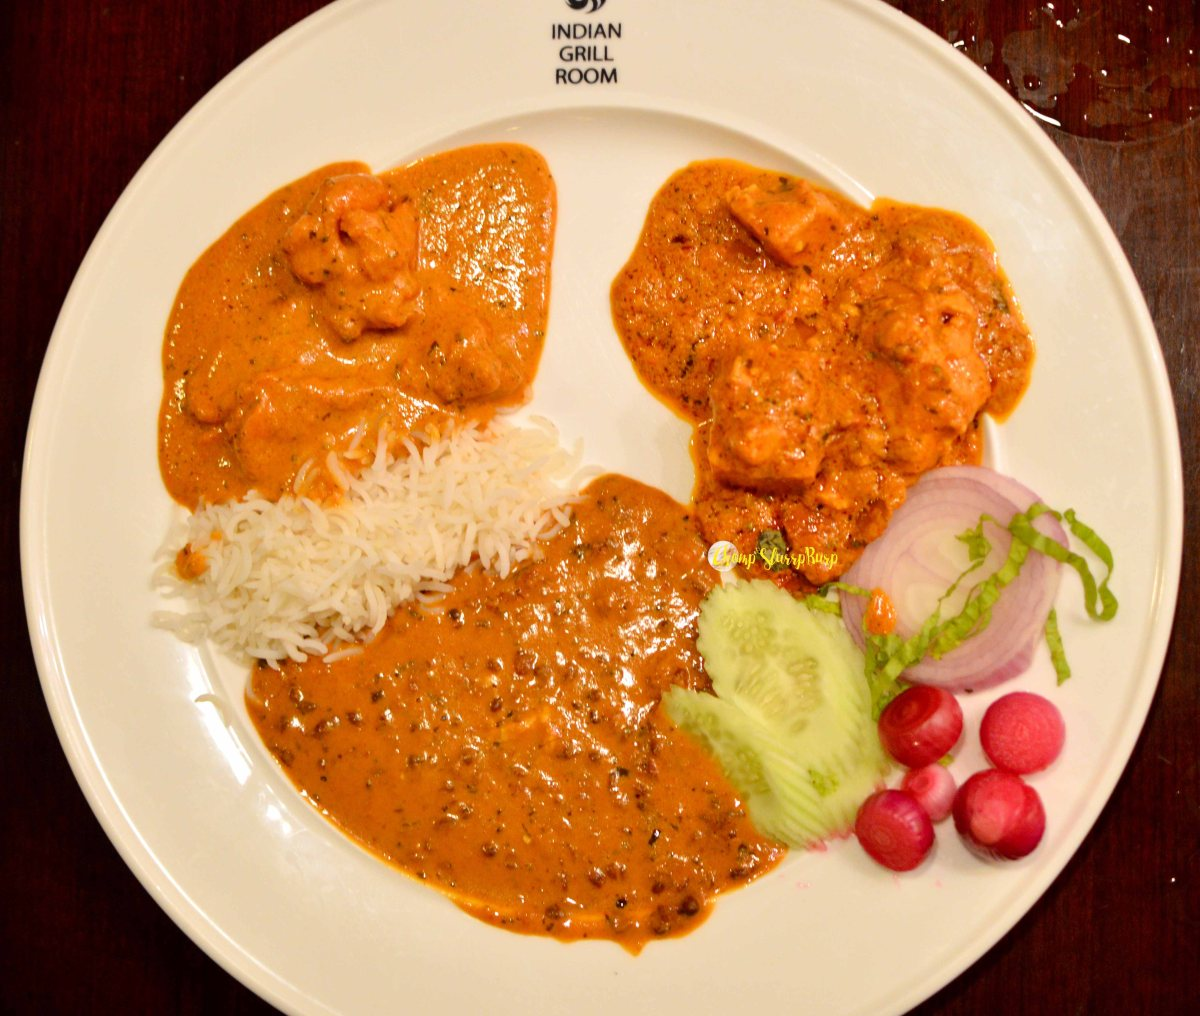 Indian grill room (23)